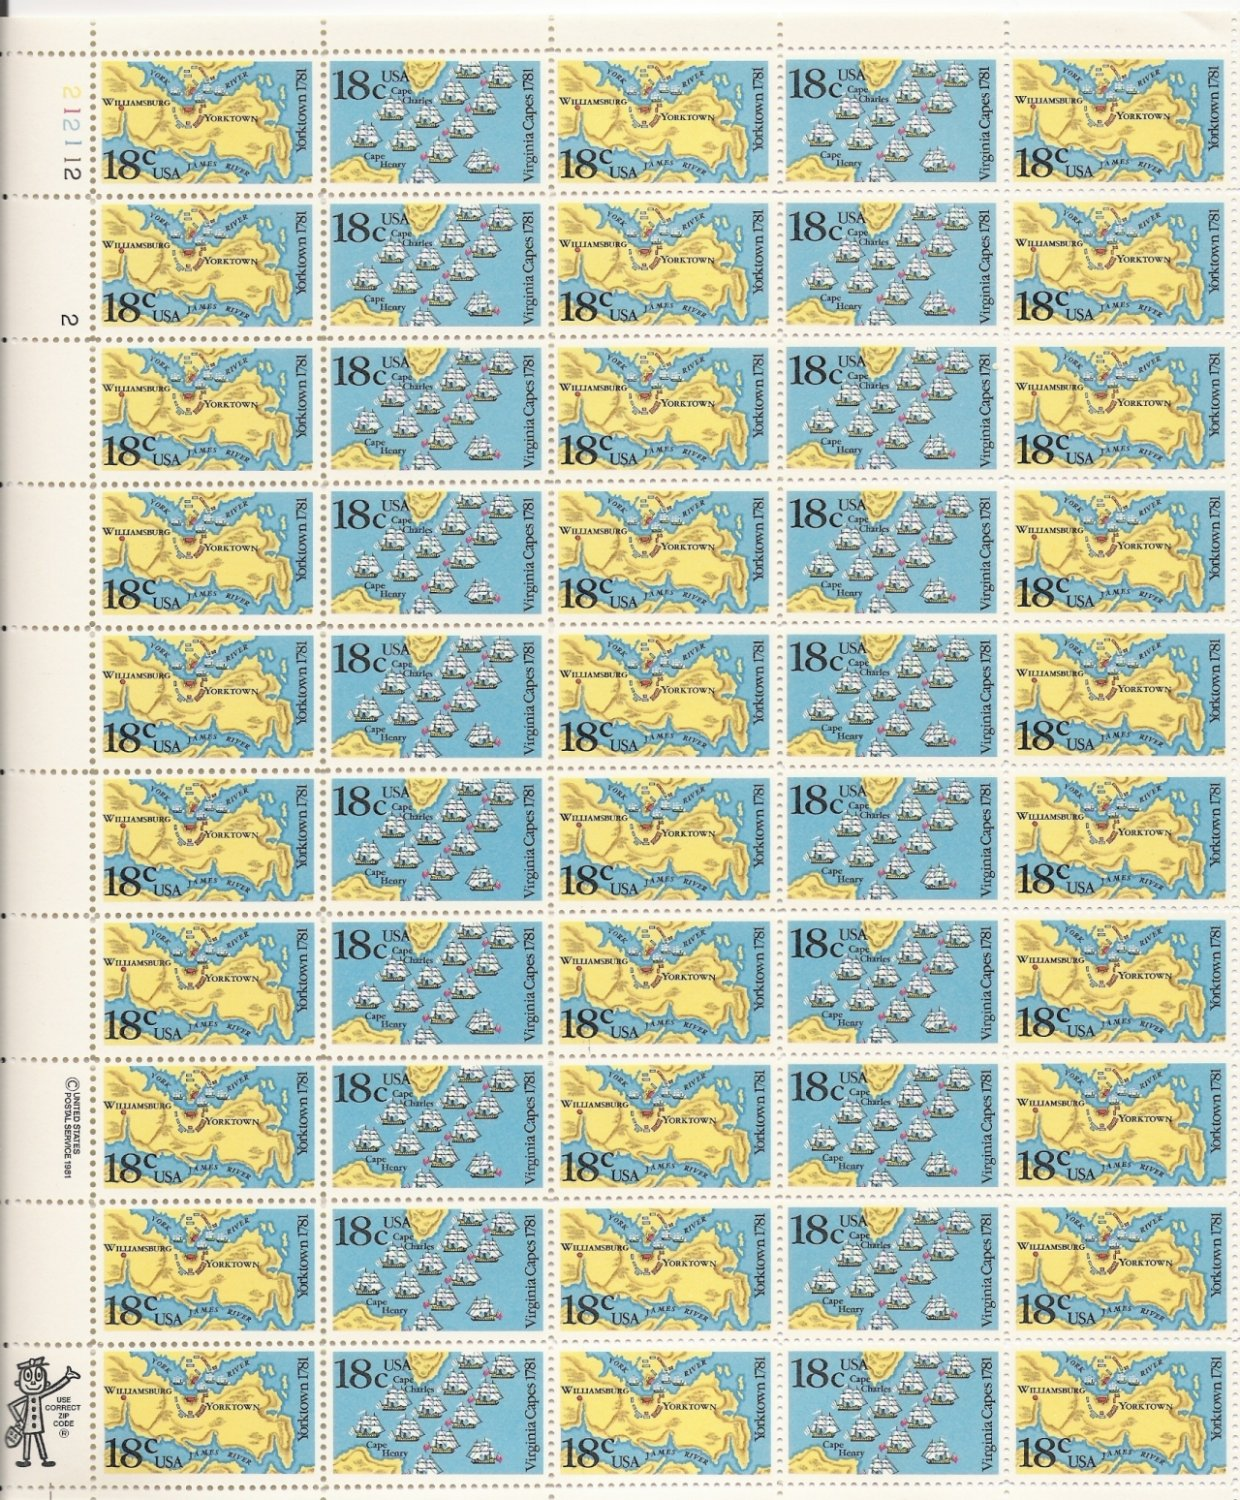 US Scott 1937 1938 - Sheet of 50 - Battle of Yorktown & Virginia Capes - Mint Never Hinged